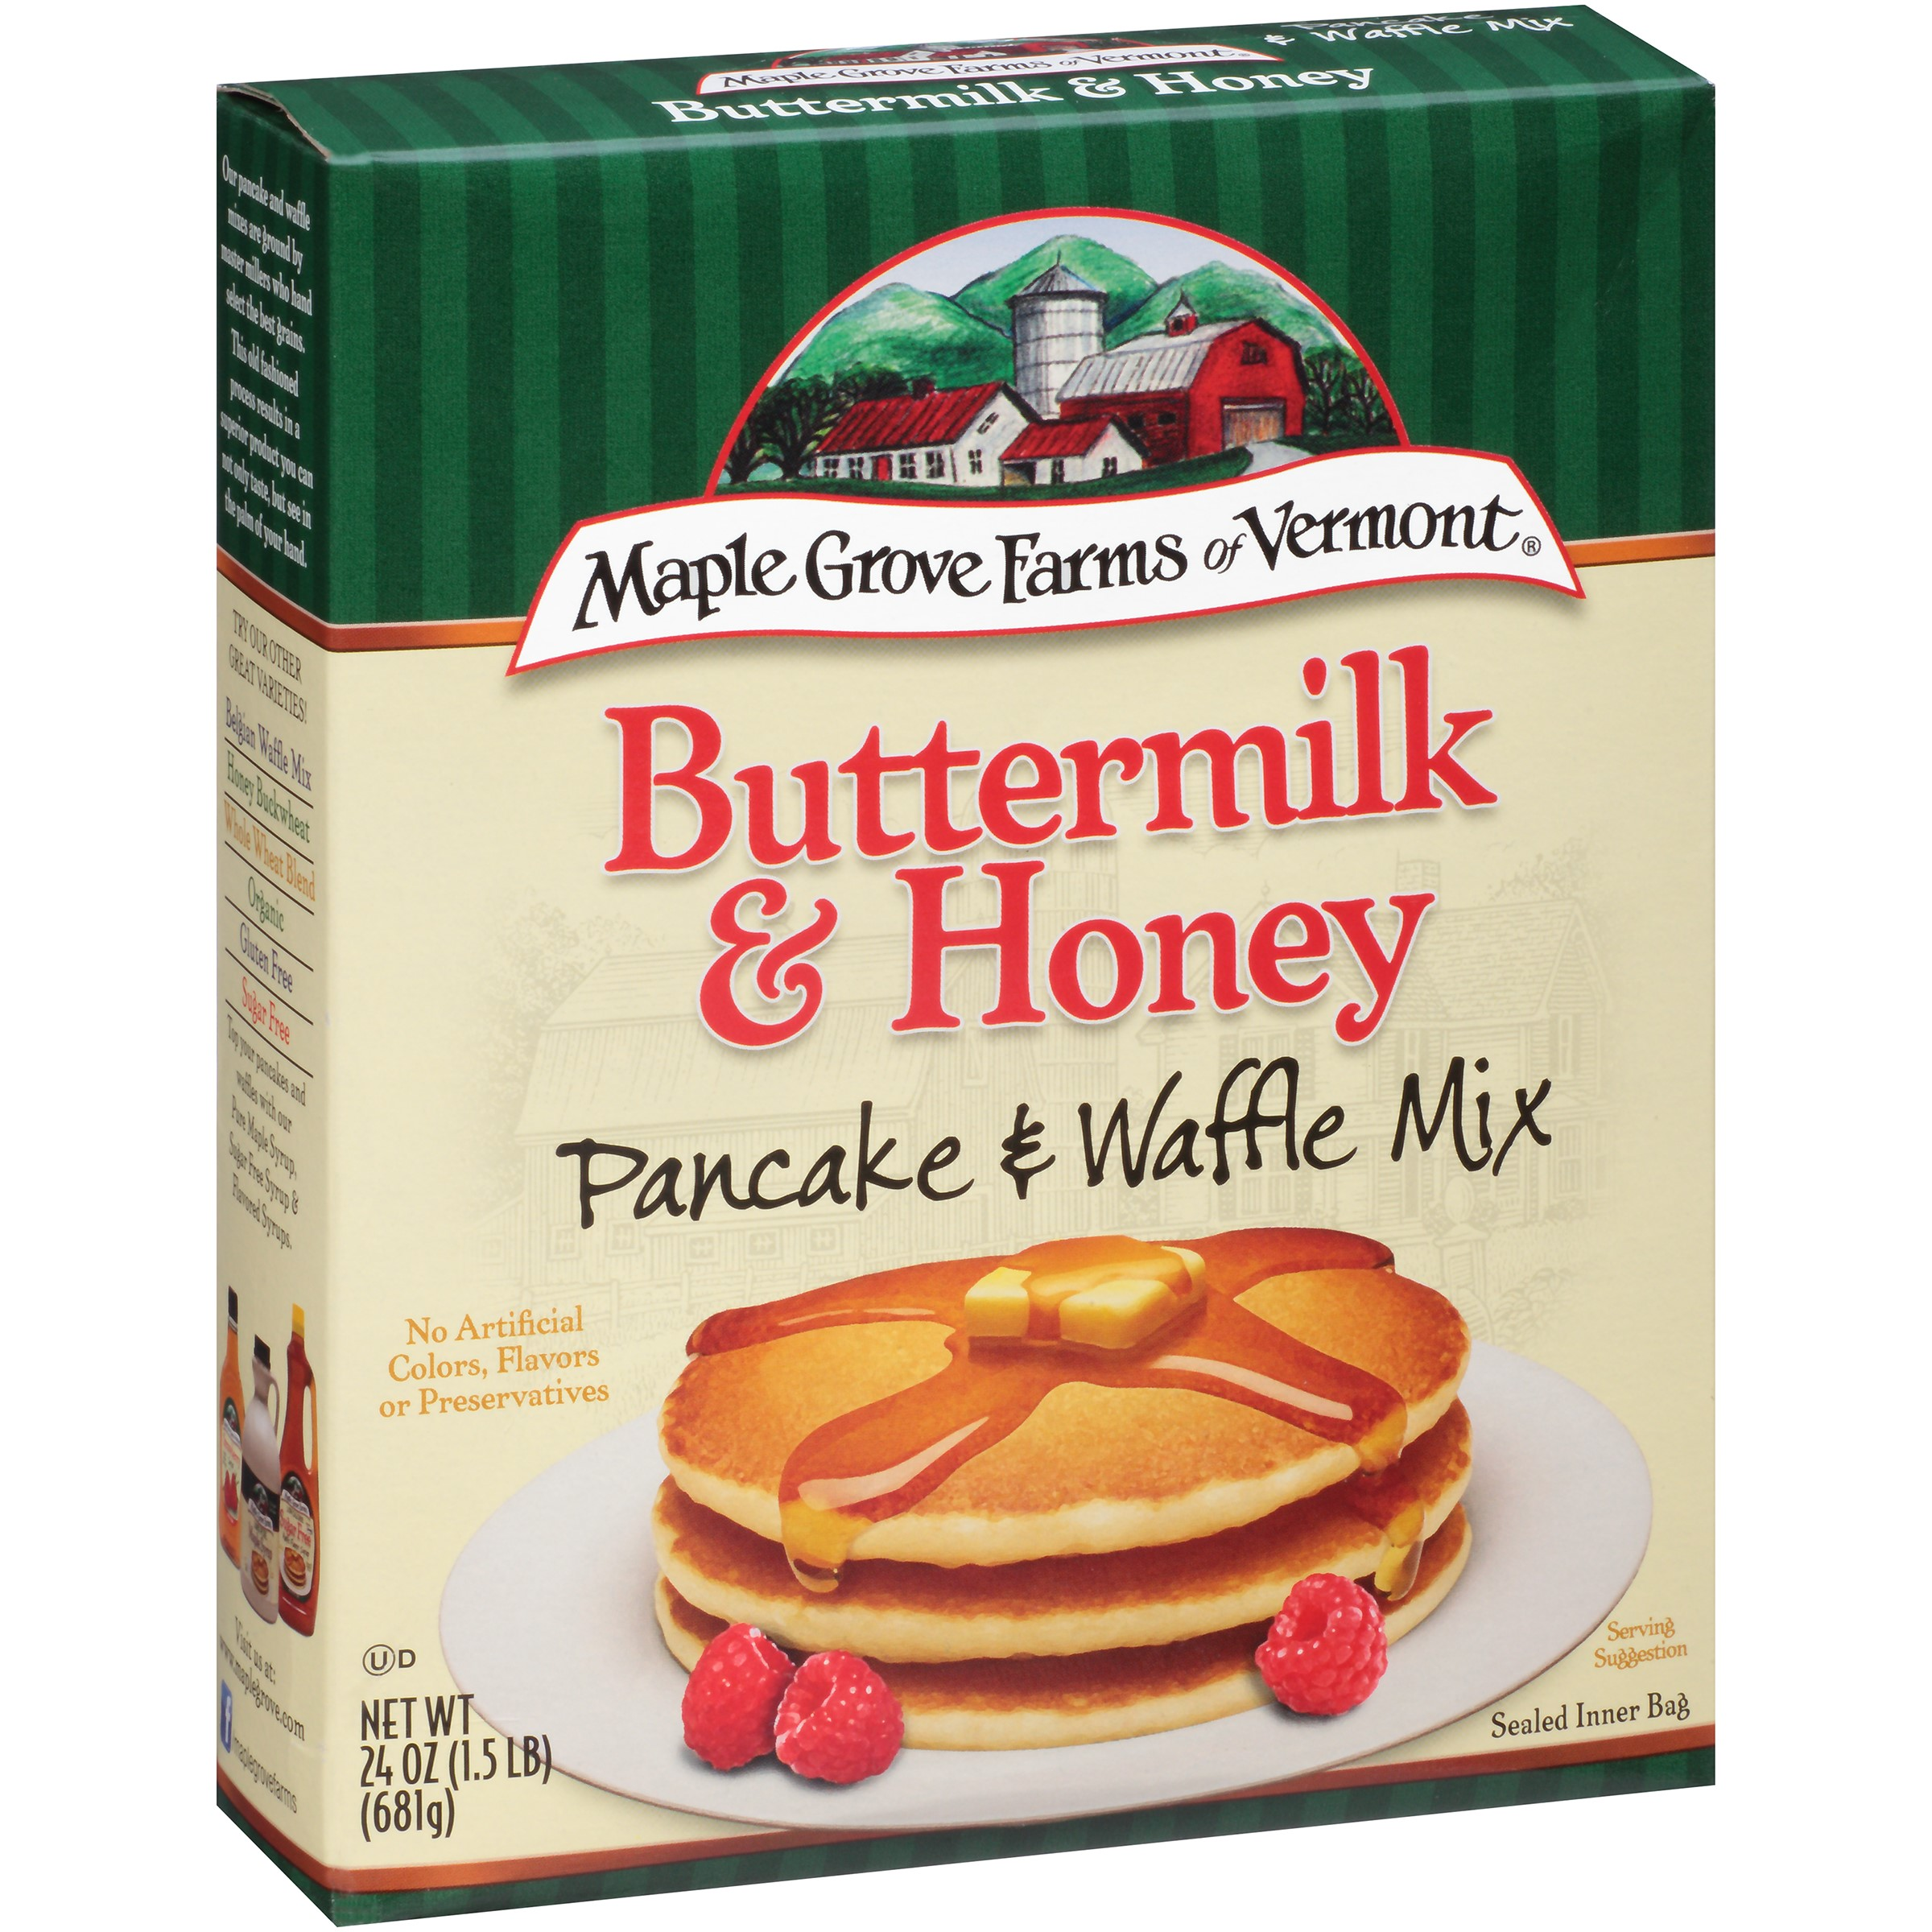 Maple Grove Farms of Vermont Buttermilk & Honey Pancake & Waffle Mix 24 oz. Box by B&G